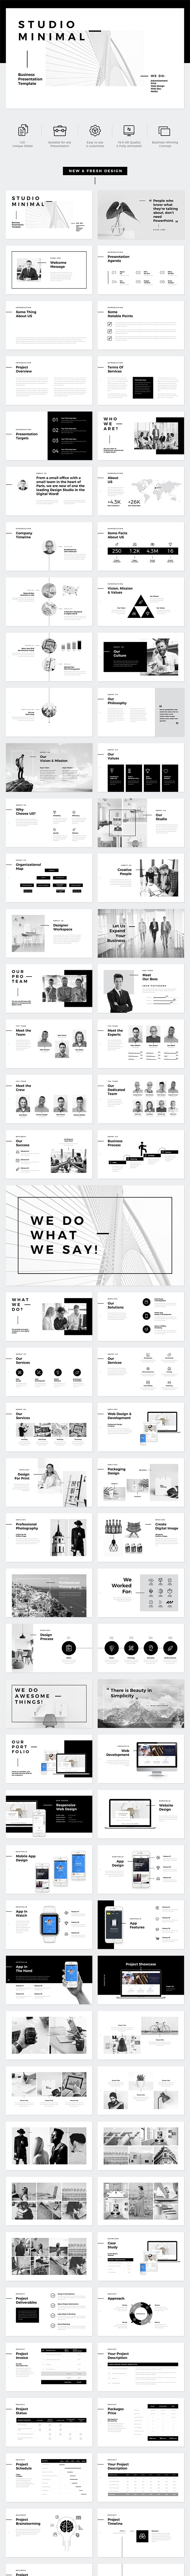 Studio Minimal Presentation PowerPoint Template - Business PowerPoint Templates